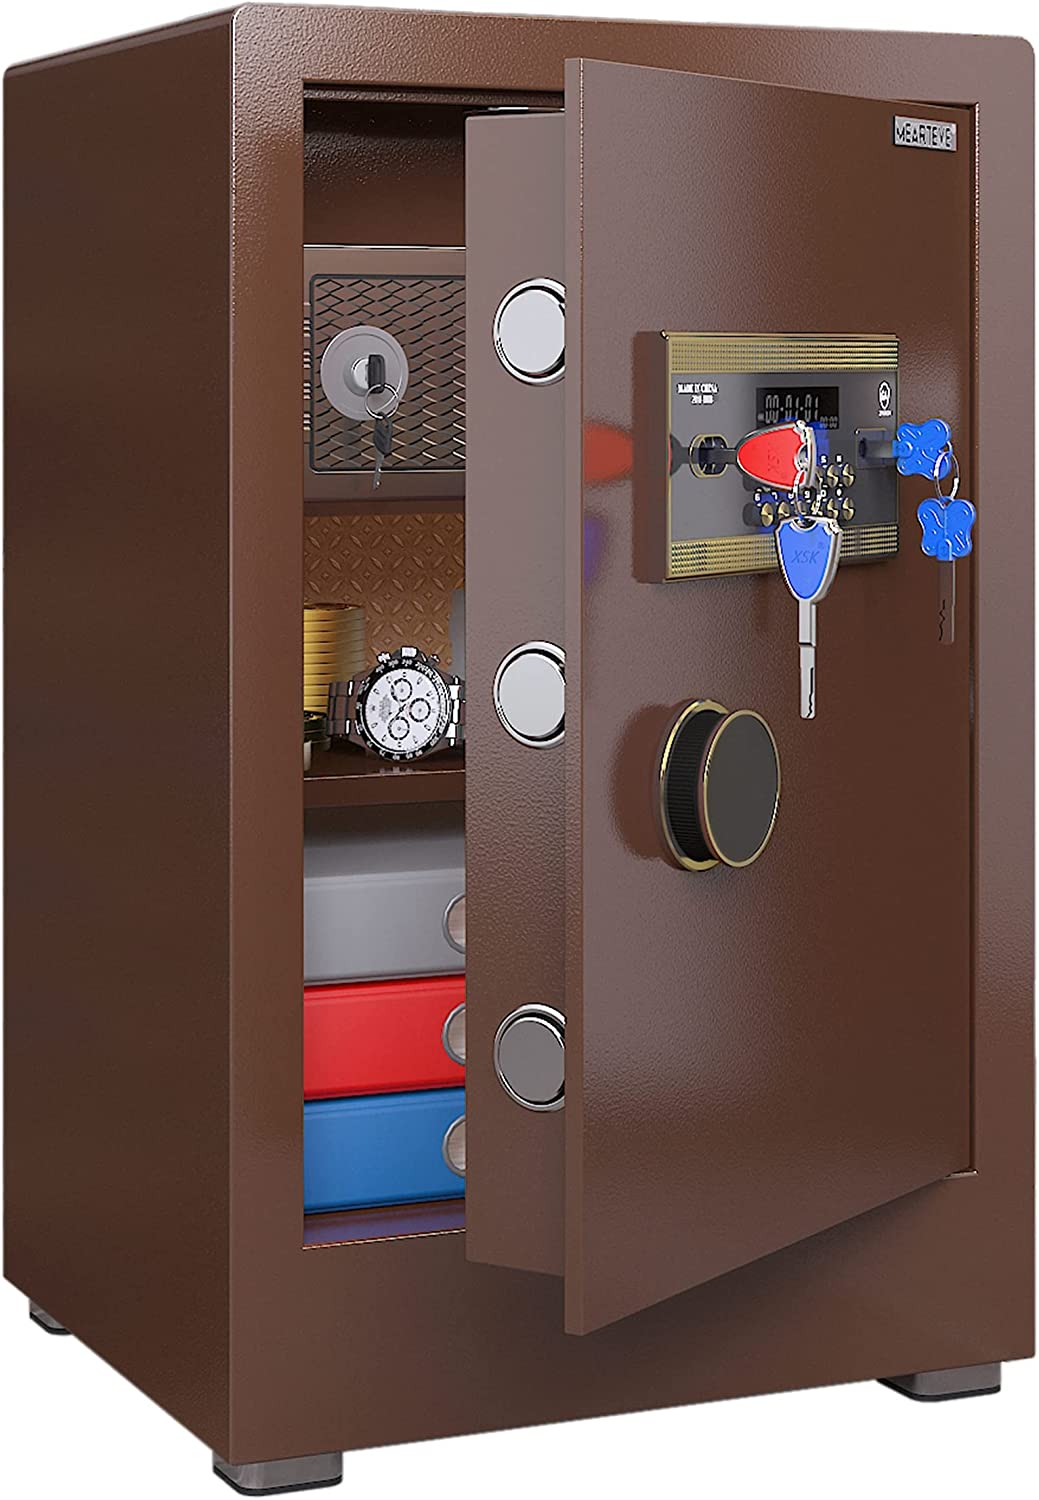 Digital Security Safe Box Key Home Electronic with Max 46% OFF Year-end annual account